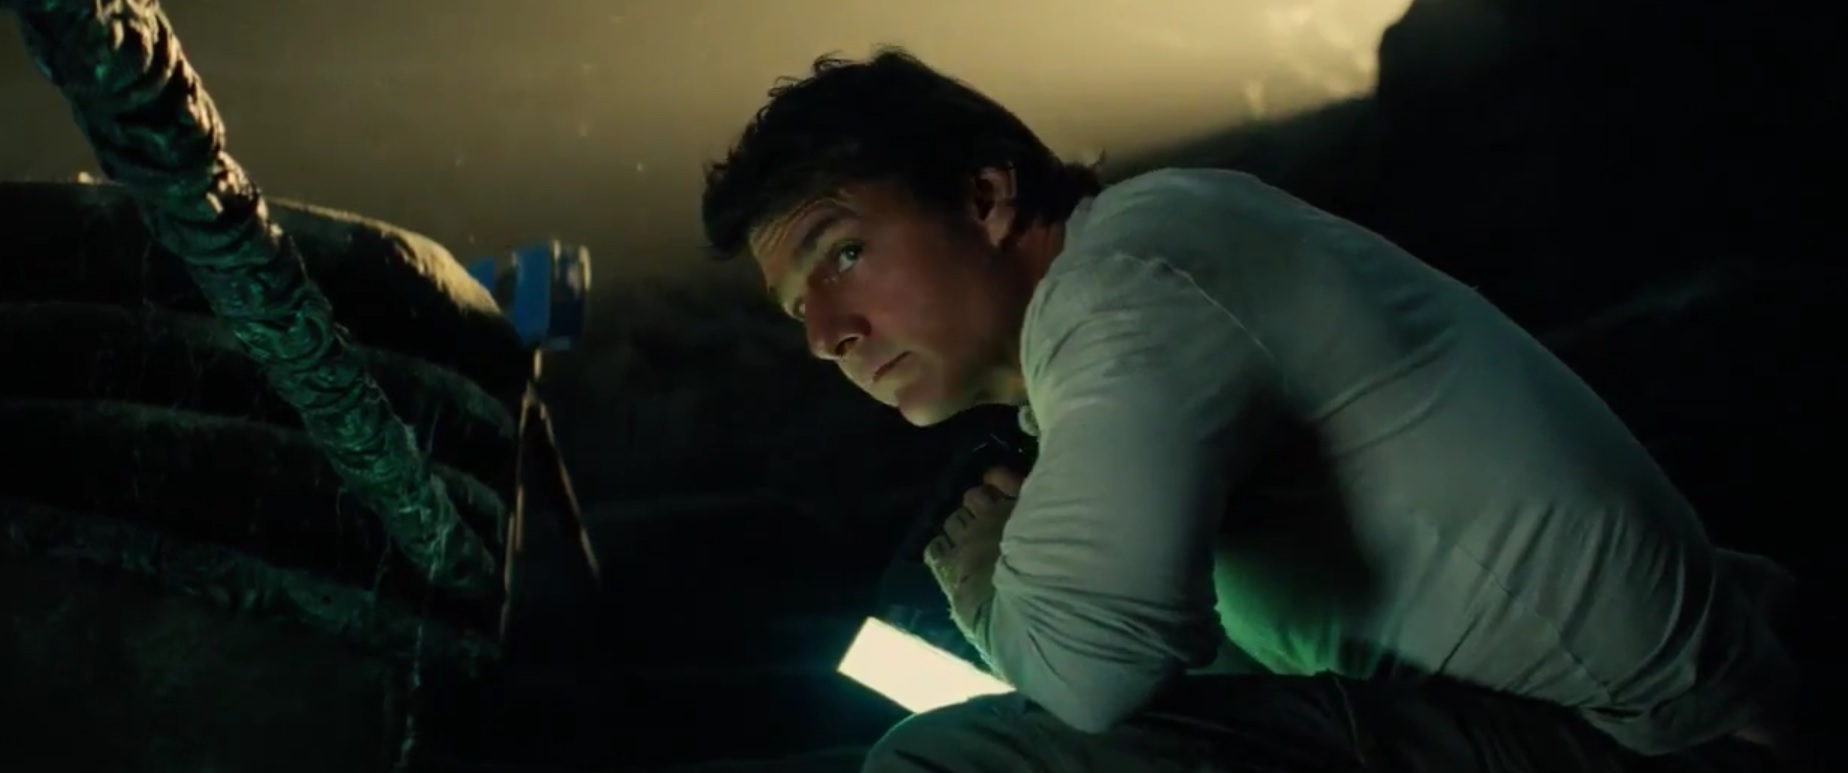 Tom Cruise should begin the scanning operation before stealing